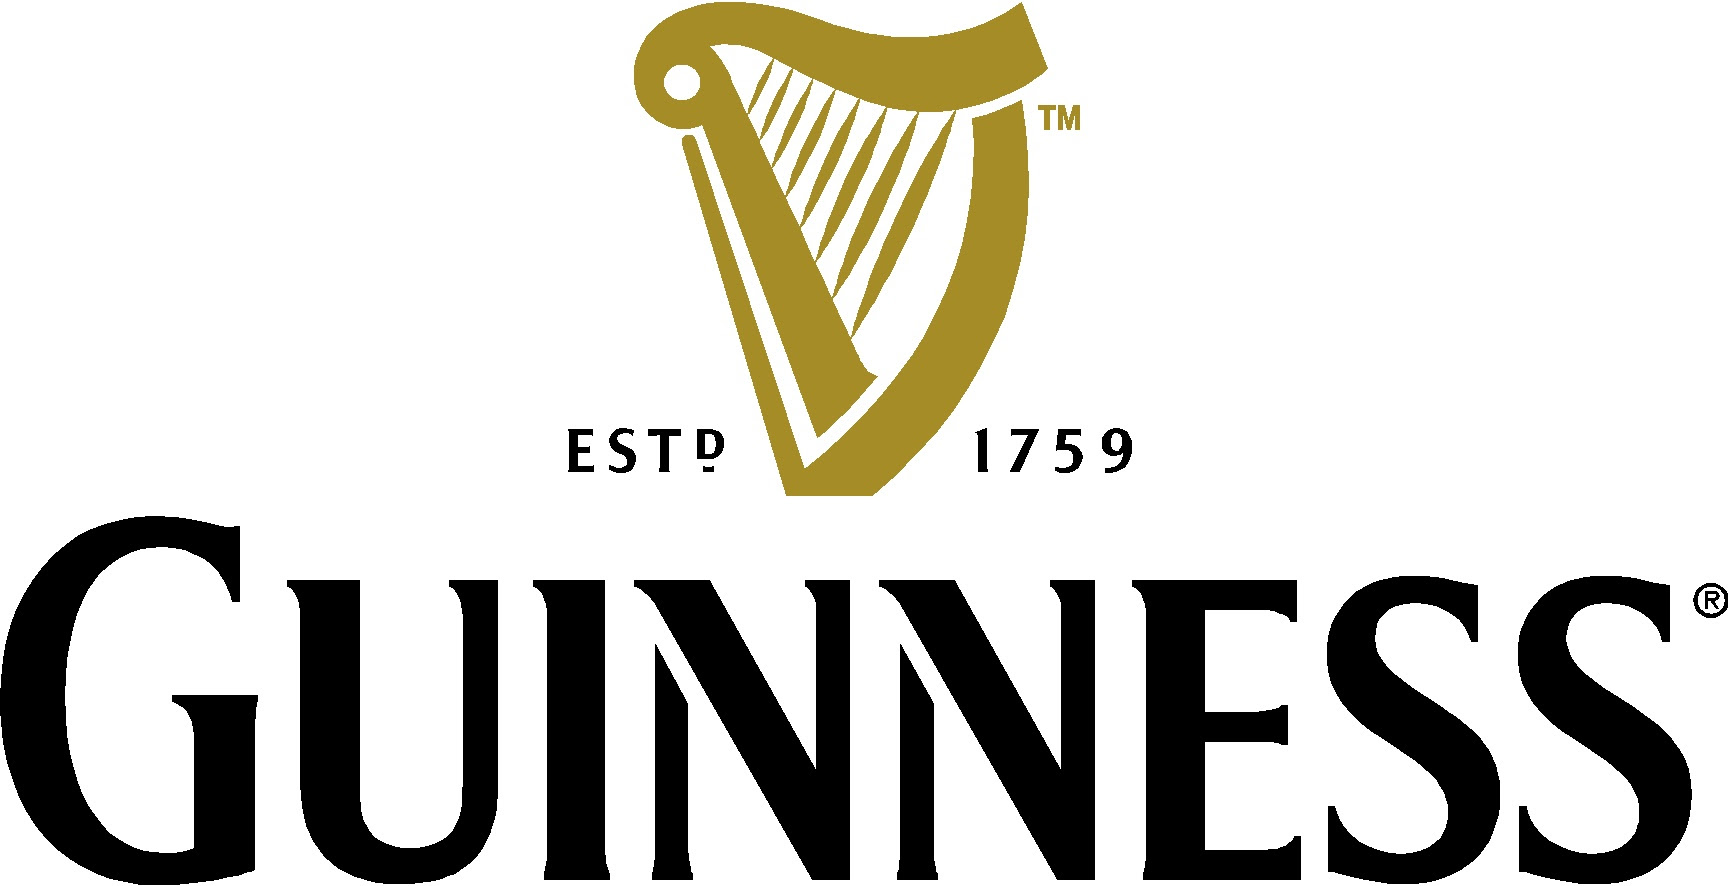 Guinness Nigeria Sales and Distributor Manager - Mainstream Spirits Recruitment